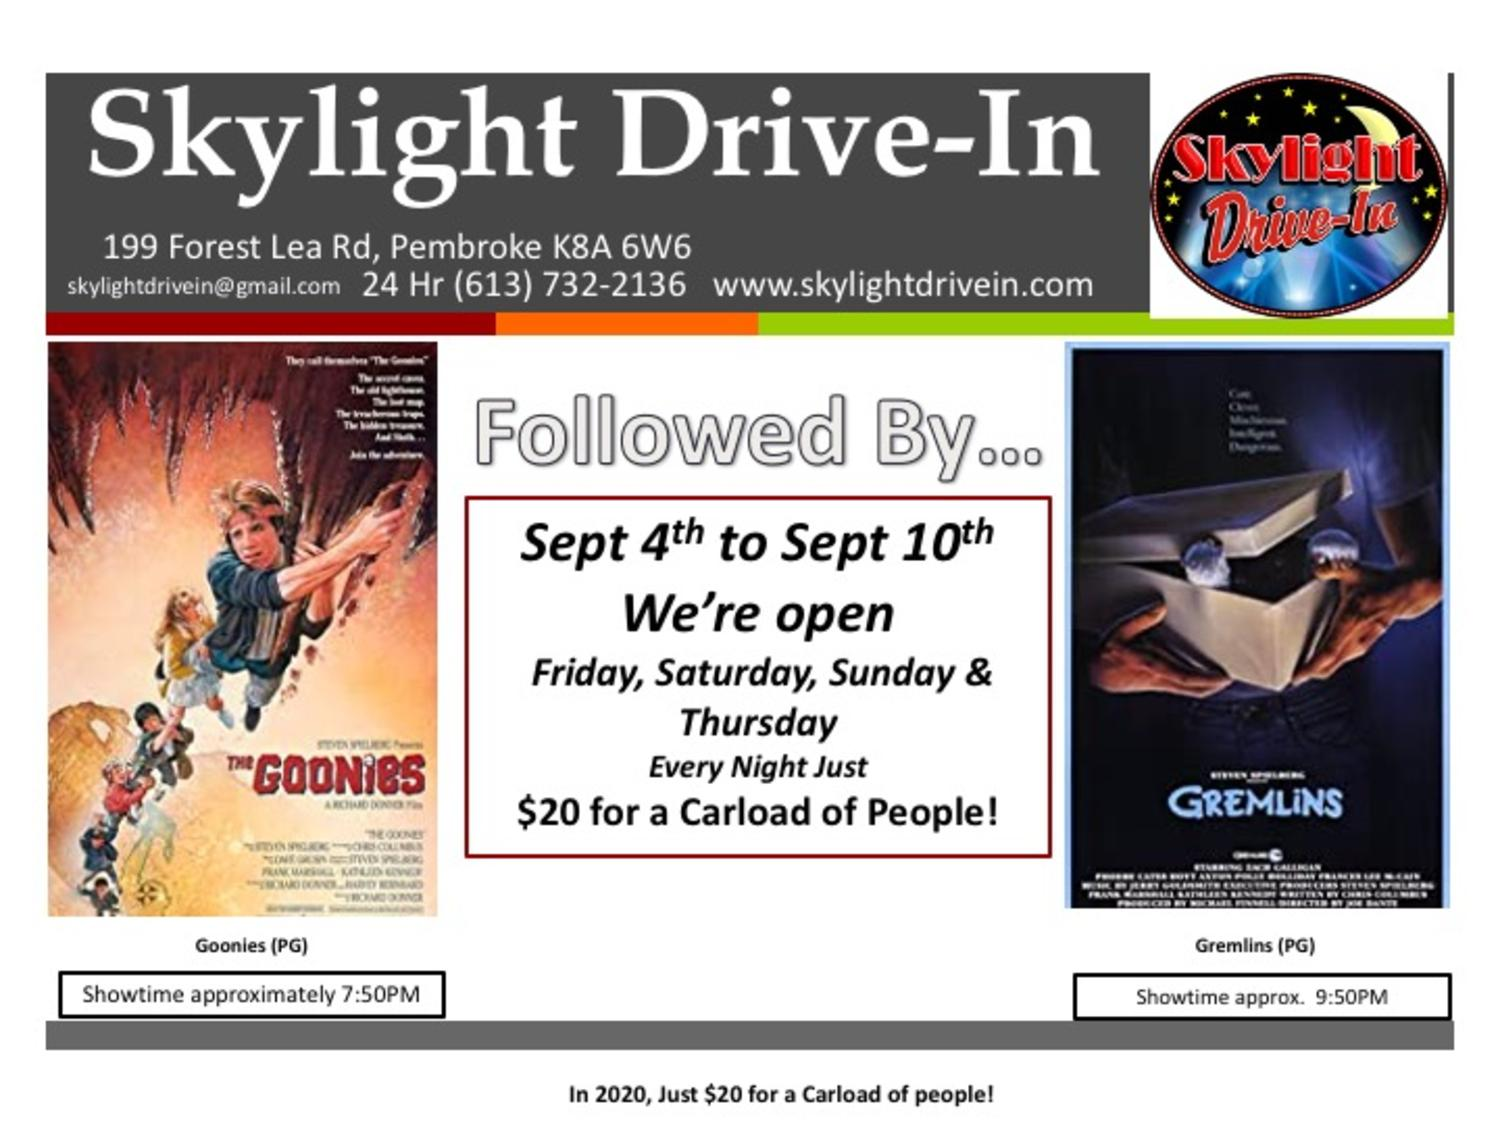 Skylight Drive-In - The Goonies followed by Gremlins